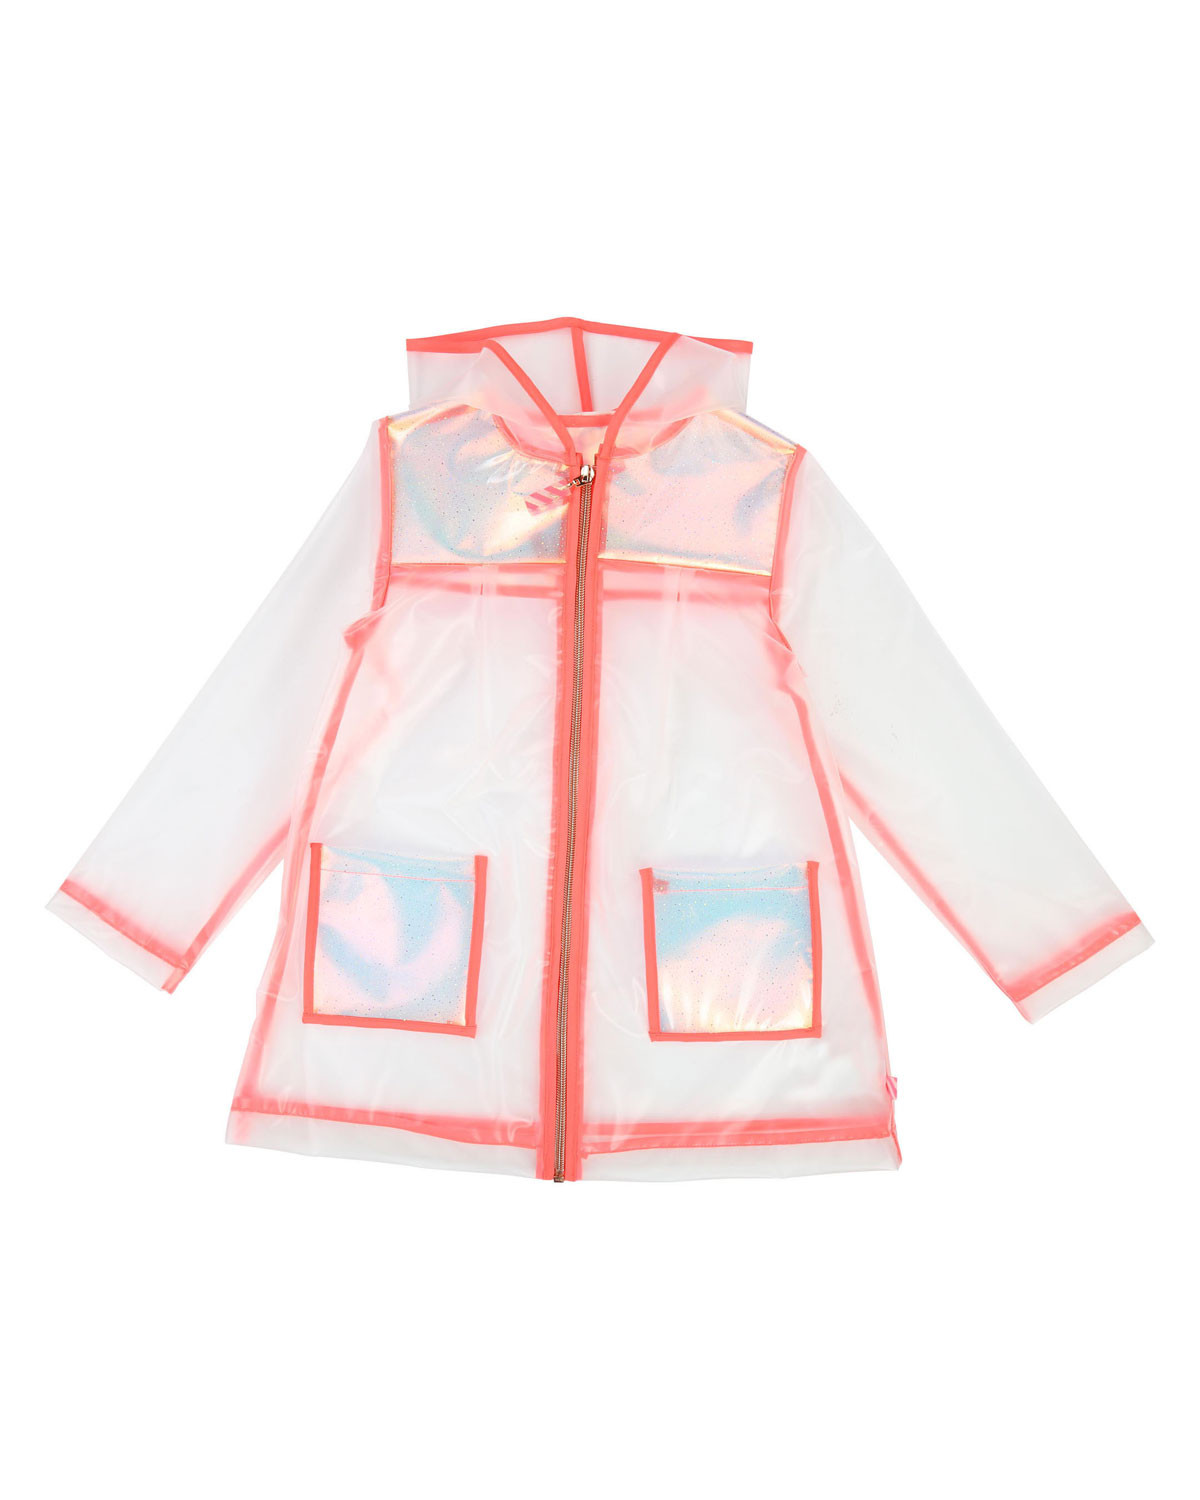 5506e465defdb BillieblushTransparent Hooded Raincoat